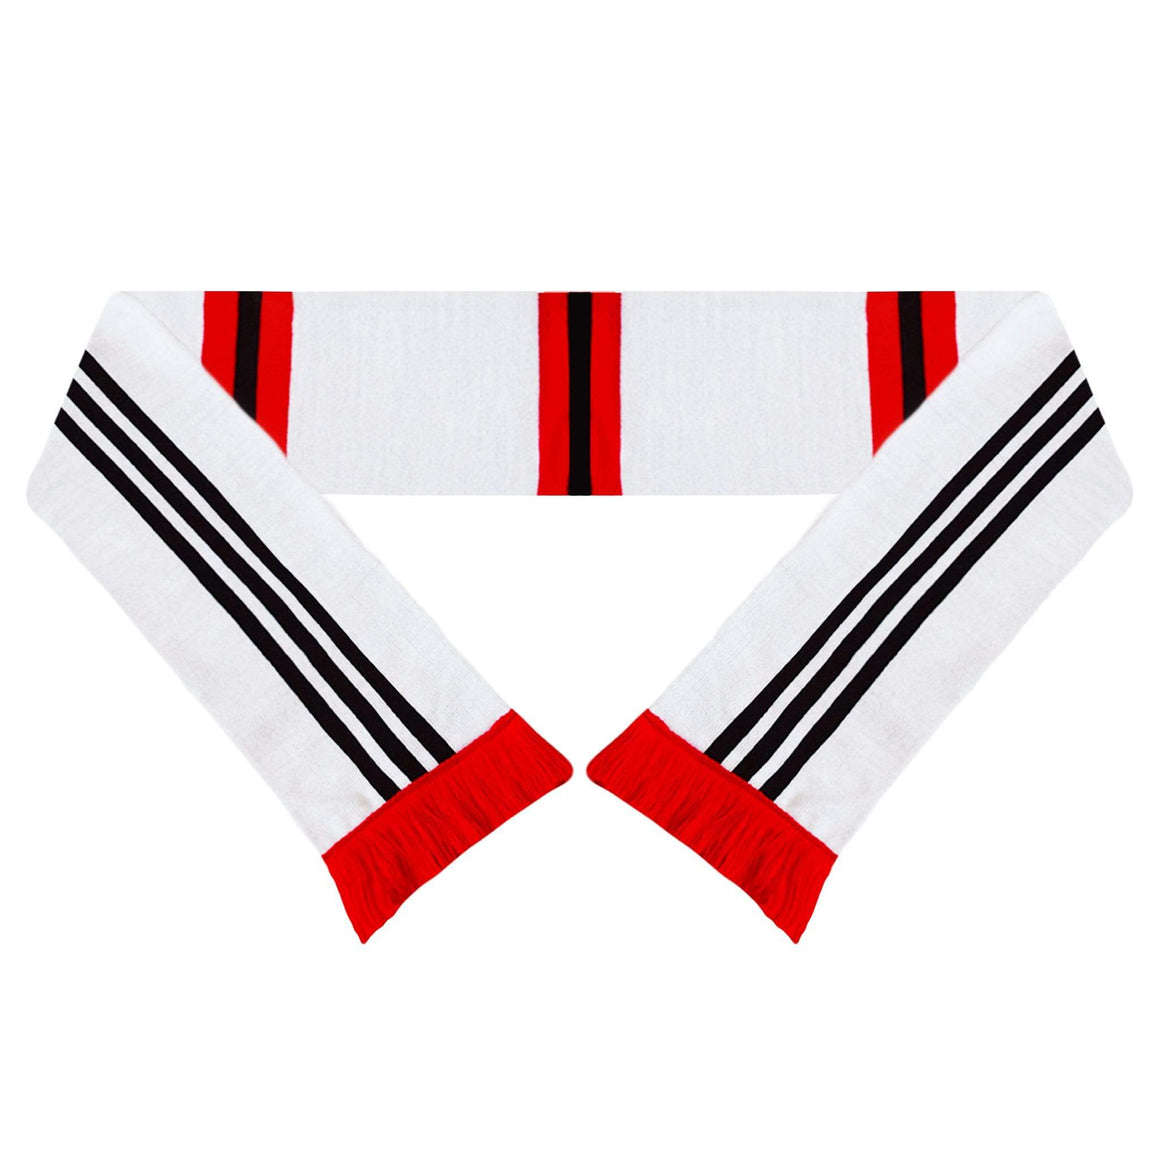 Fans Favourite Manchester United Retro Football Scarf 1975-80 Away Shirt